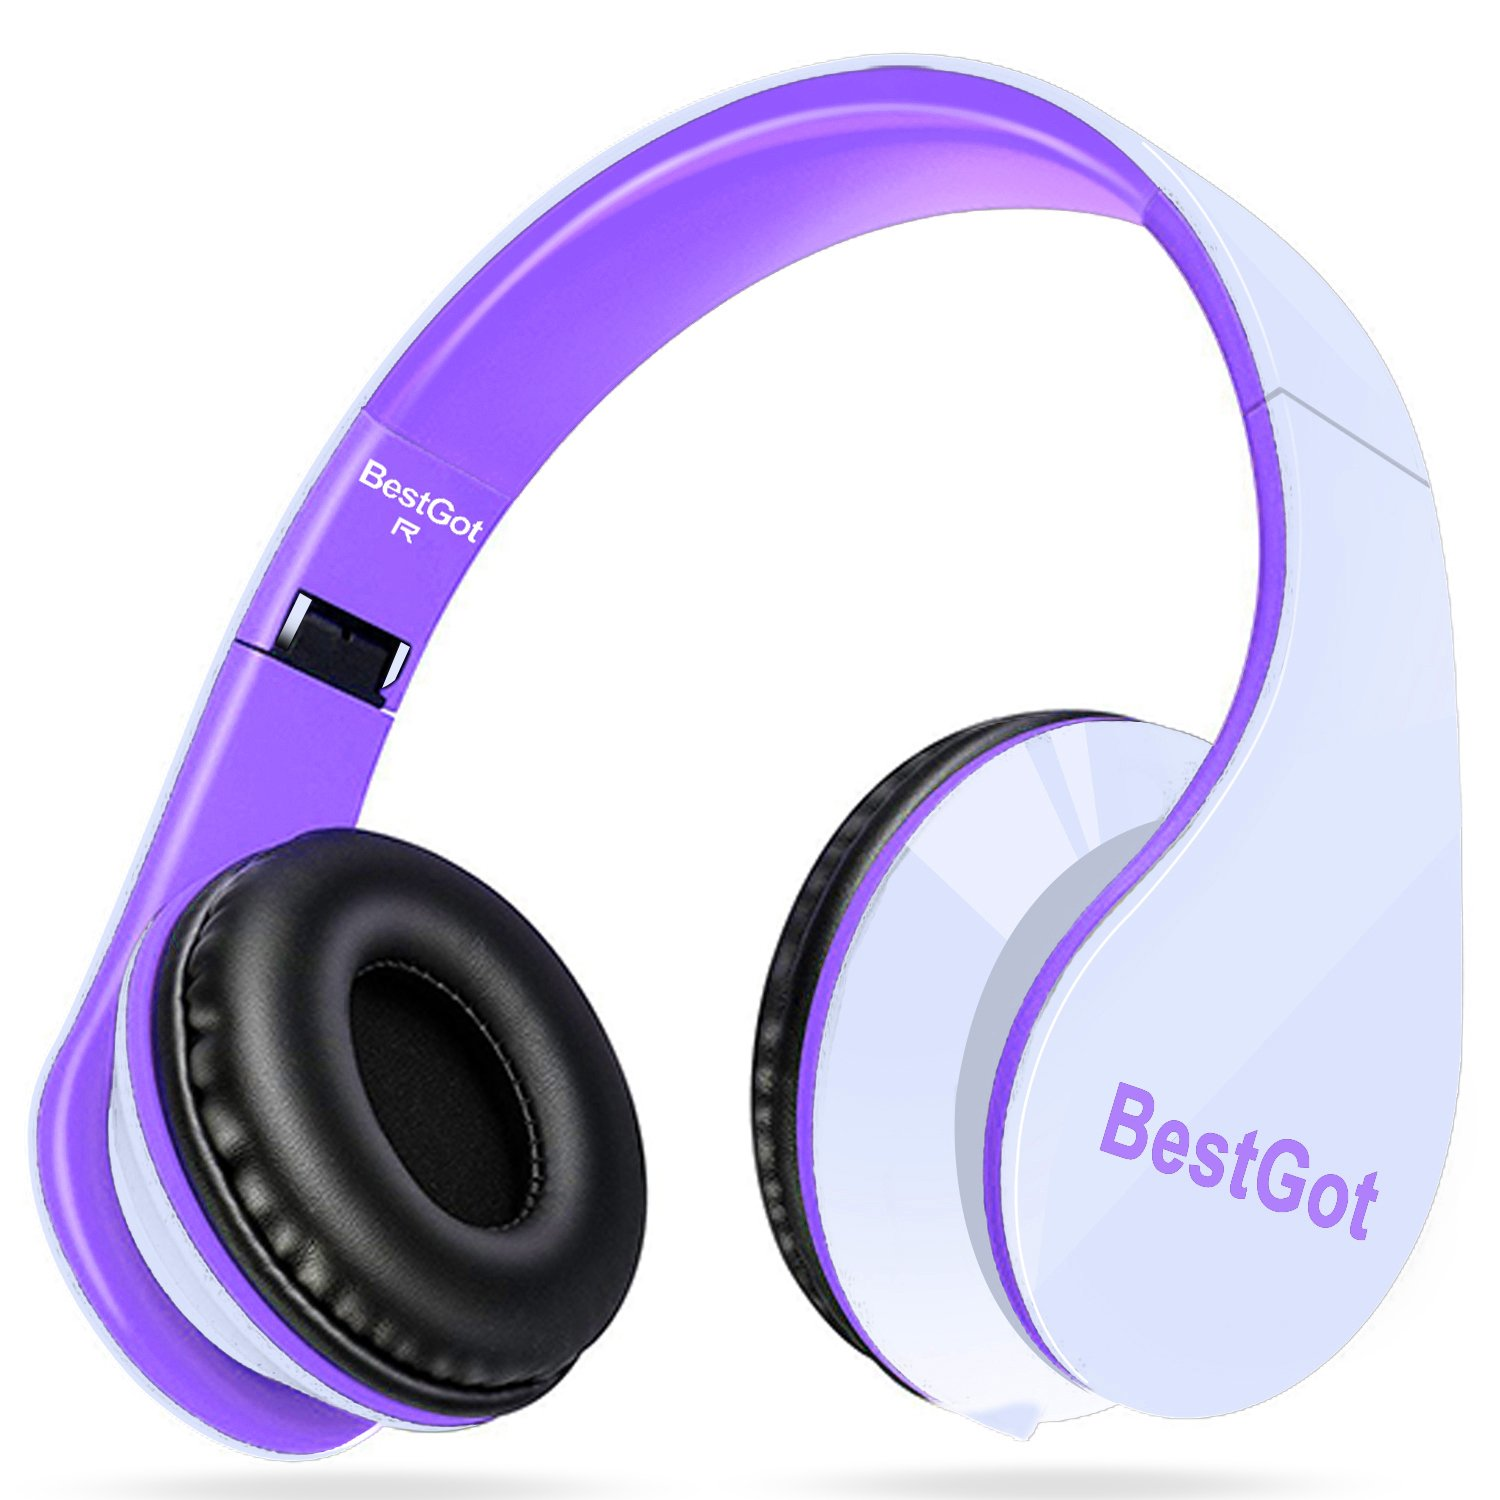 BestGot Headphones Over Ear with microphone for kids adult In-line Volume with Transport Waterproof Bag Foldable Headphone with 3.5mm plug removable cord (White/Purple) by Bestgot